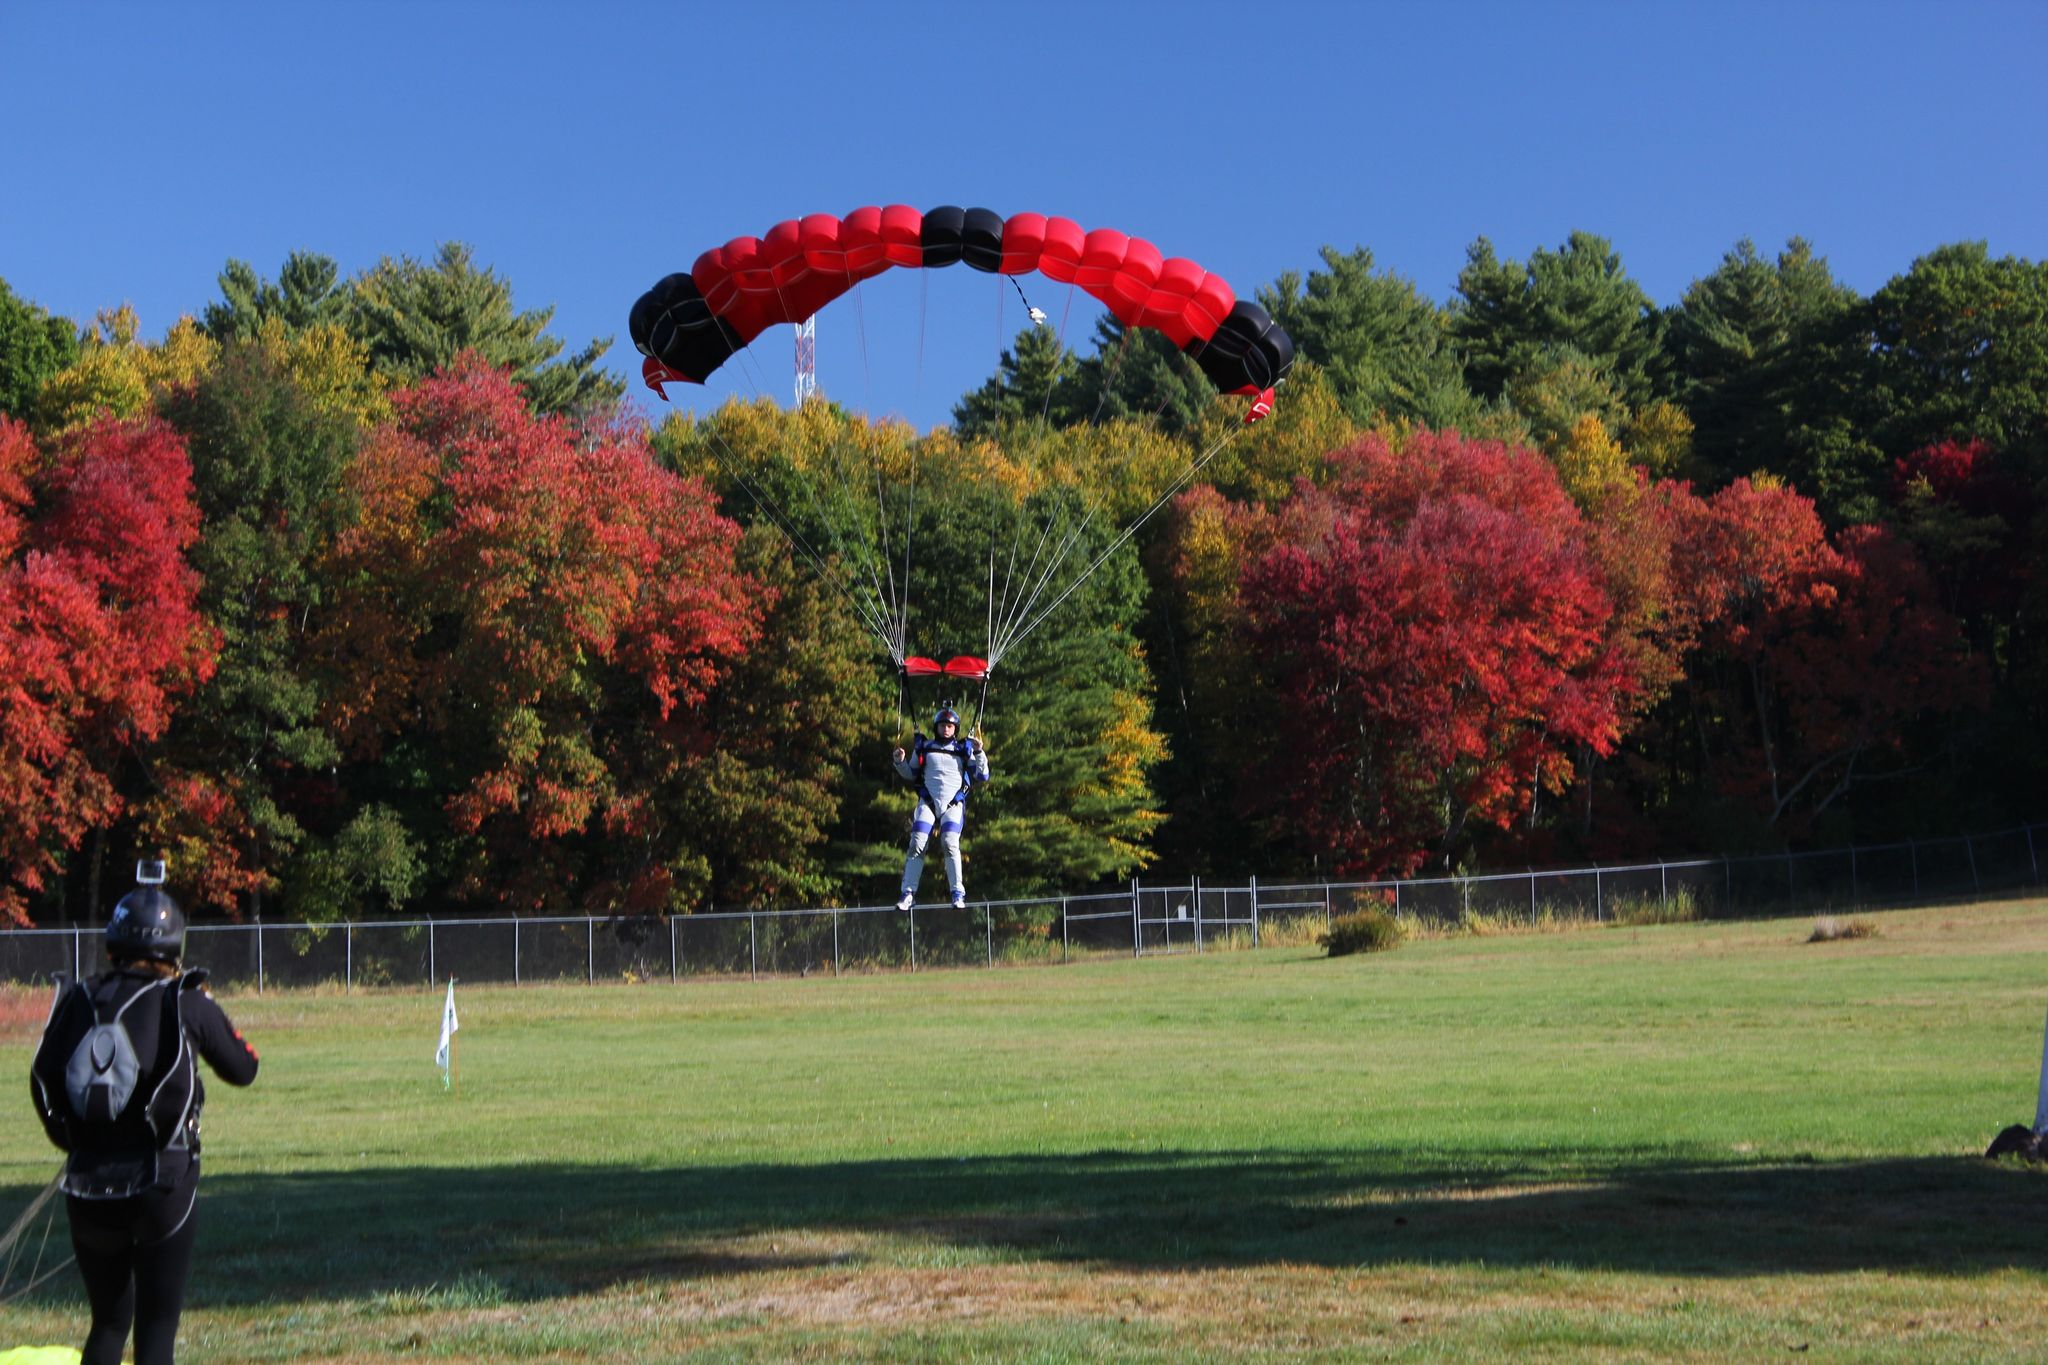 Skydive Parachute landing in the fall folliage of New England